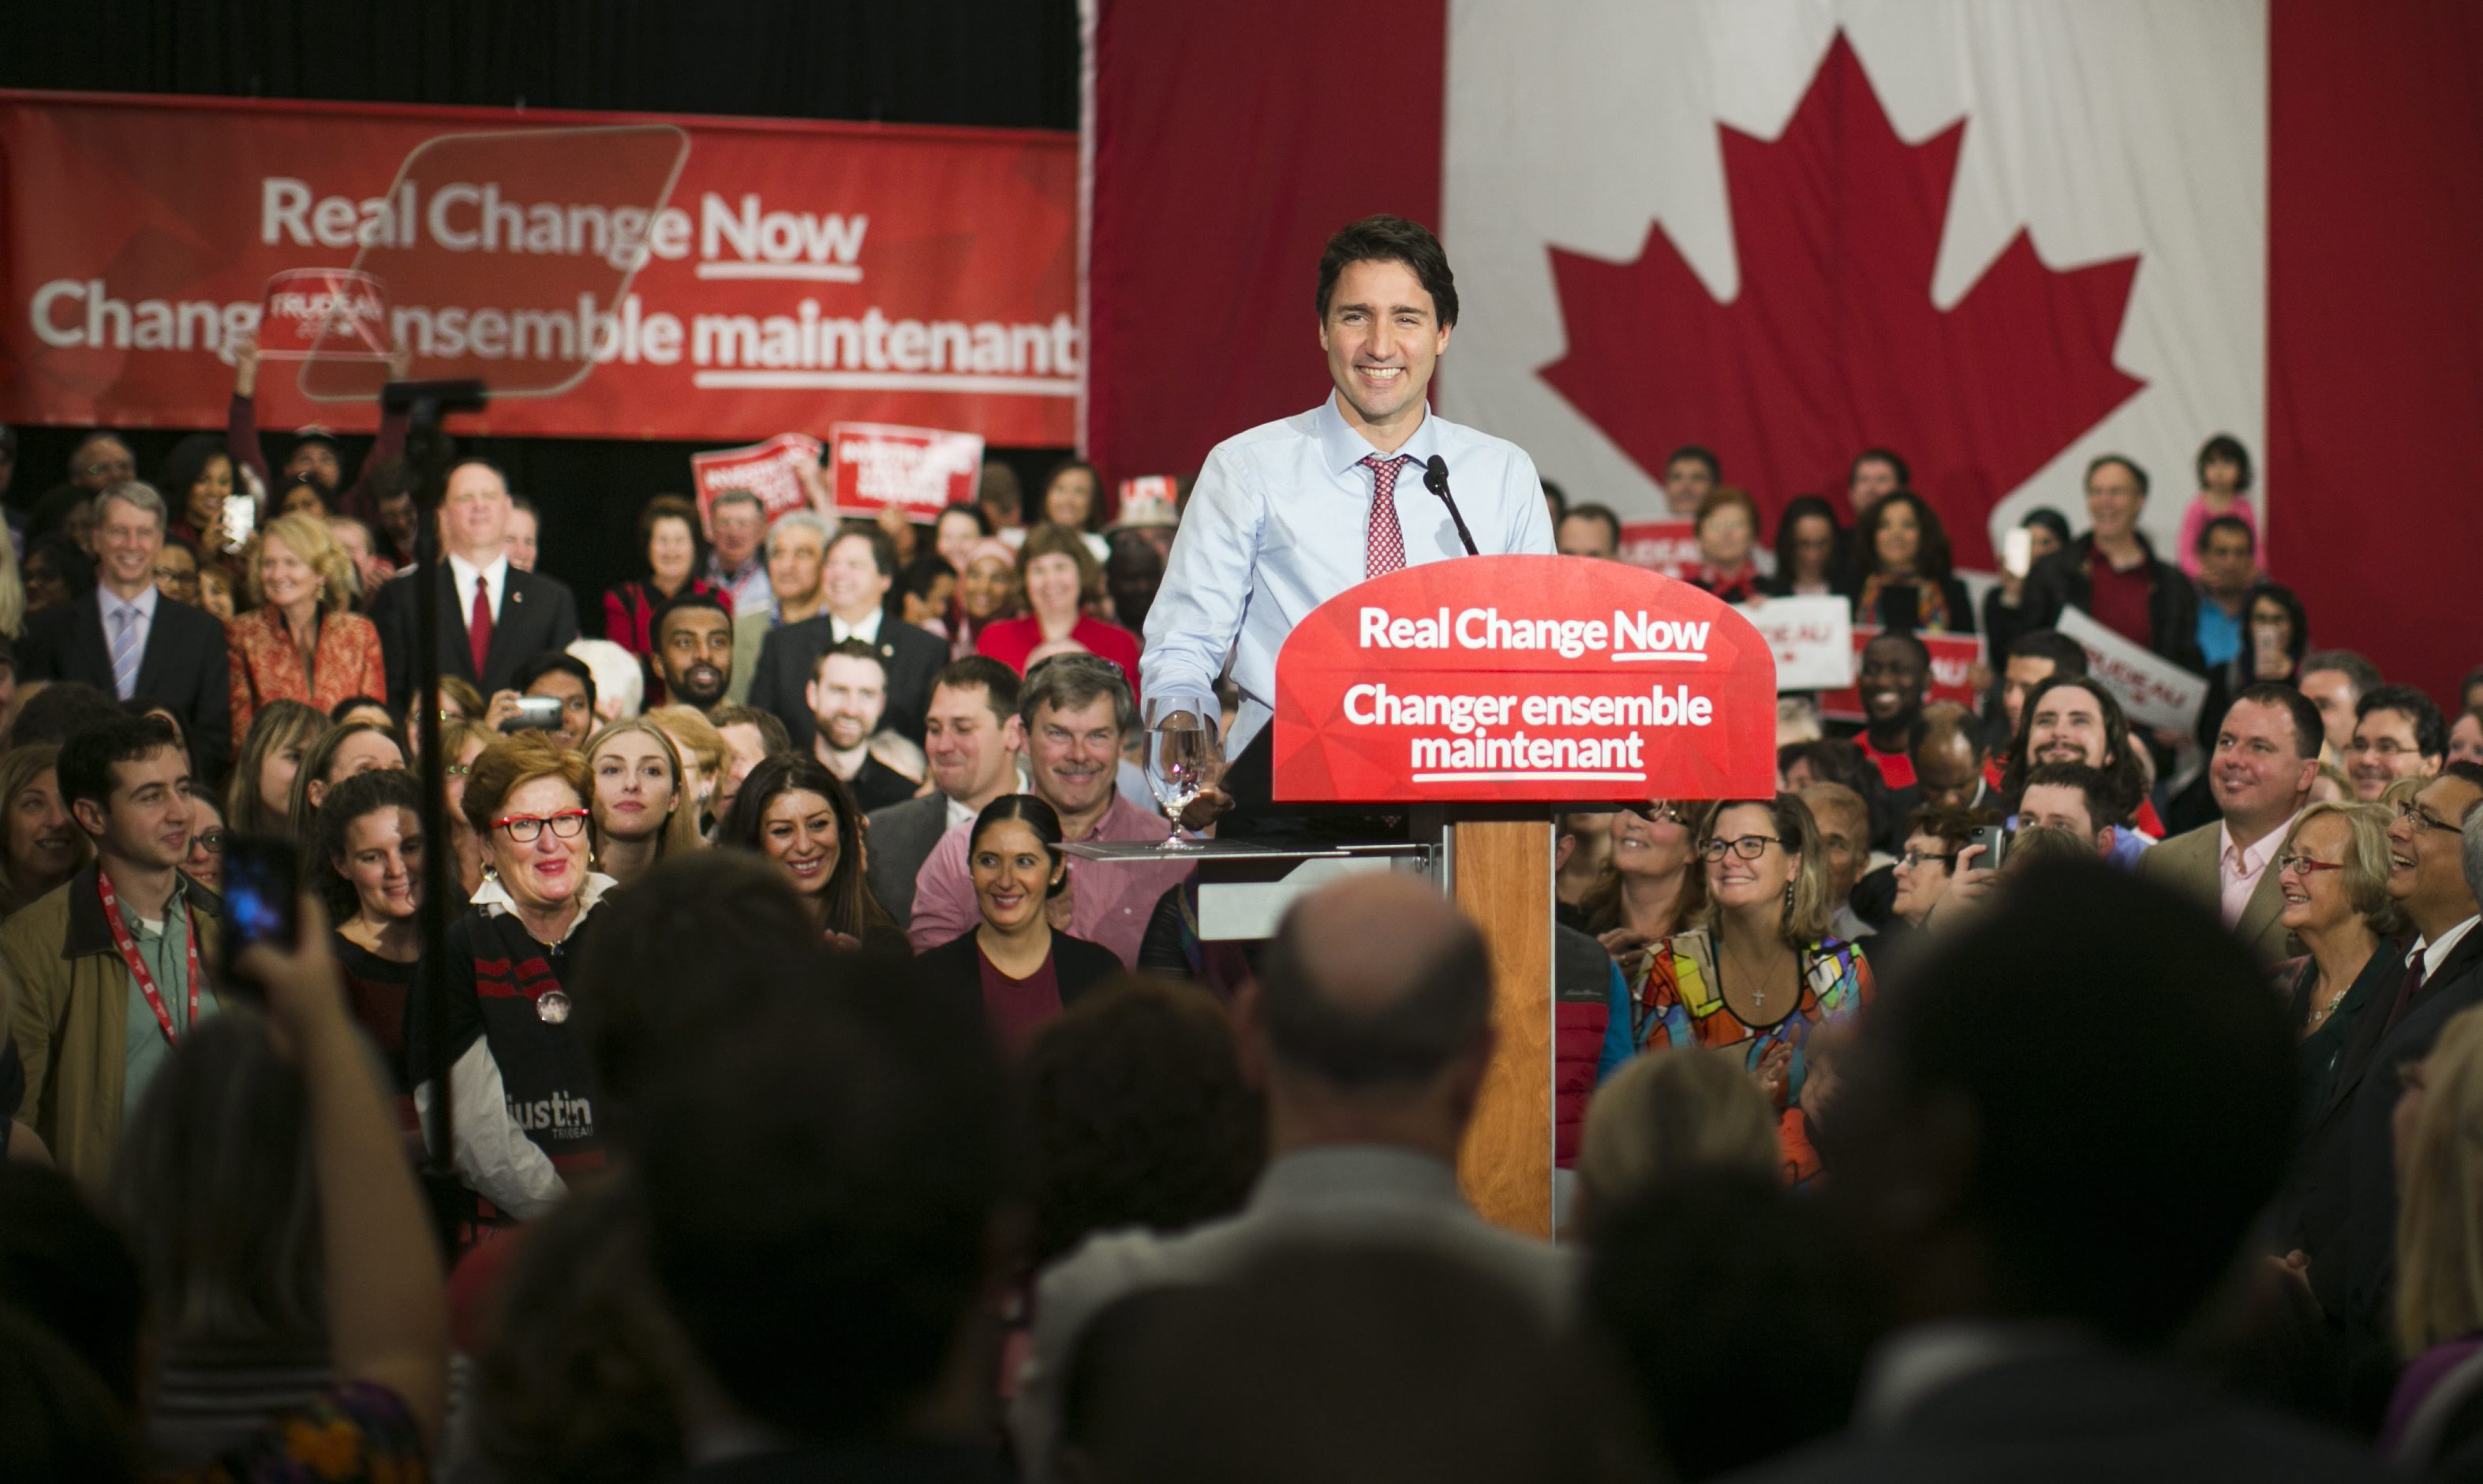 epa04985869 Canadian Prime Minister designate Justin Trudeau speaks during the rally to celebrate his majority victory in the Canada's 42nd election, in Ottawa, Canada, 20 October 2015. Justin Trudeau's Liberal Party beat the incumbent Conservative Stephen Harper in the the 42nd Canadian general election held on 19 October, with 184 confirmed seats. EPA/Chris Roussakis